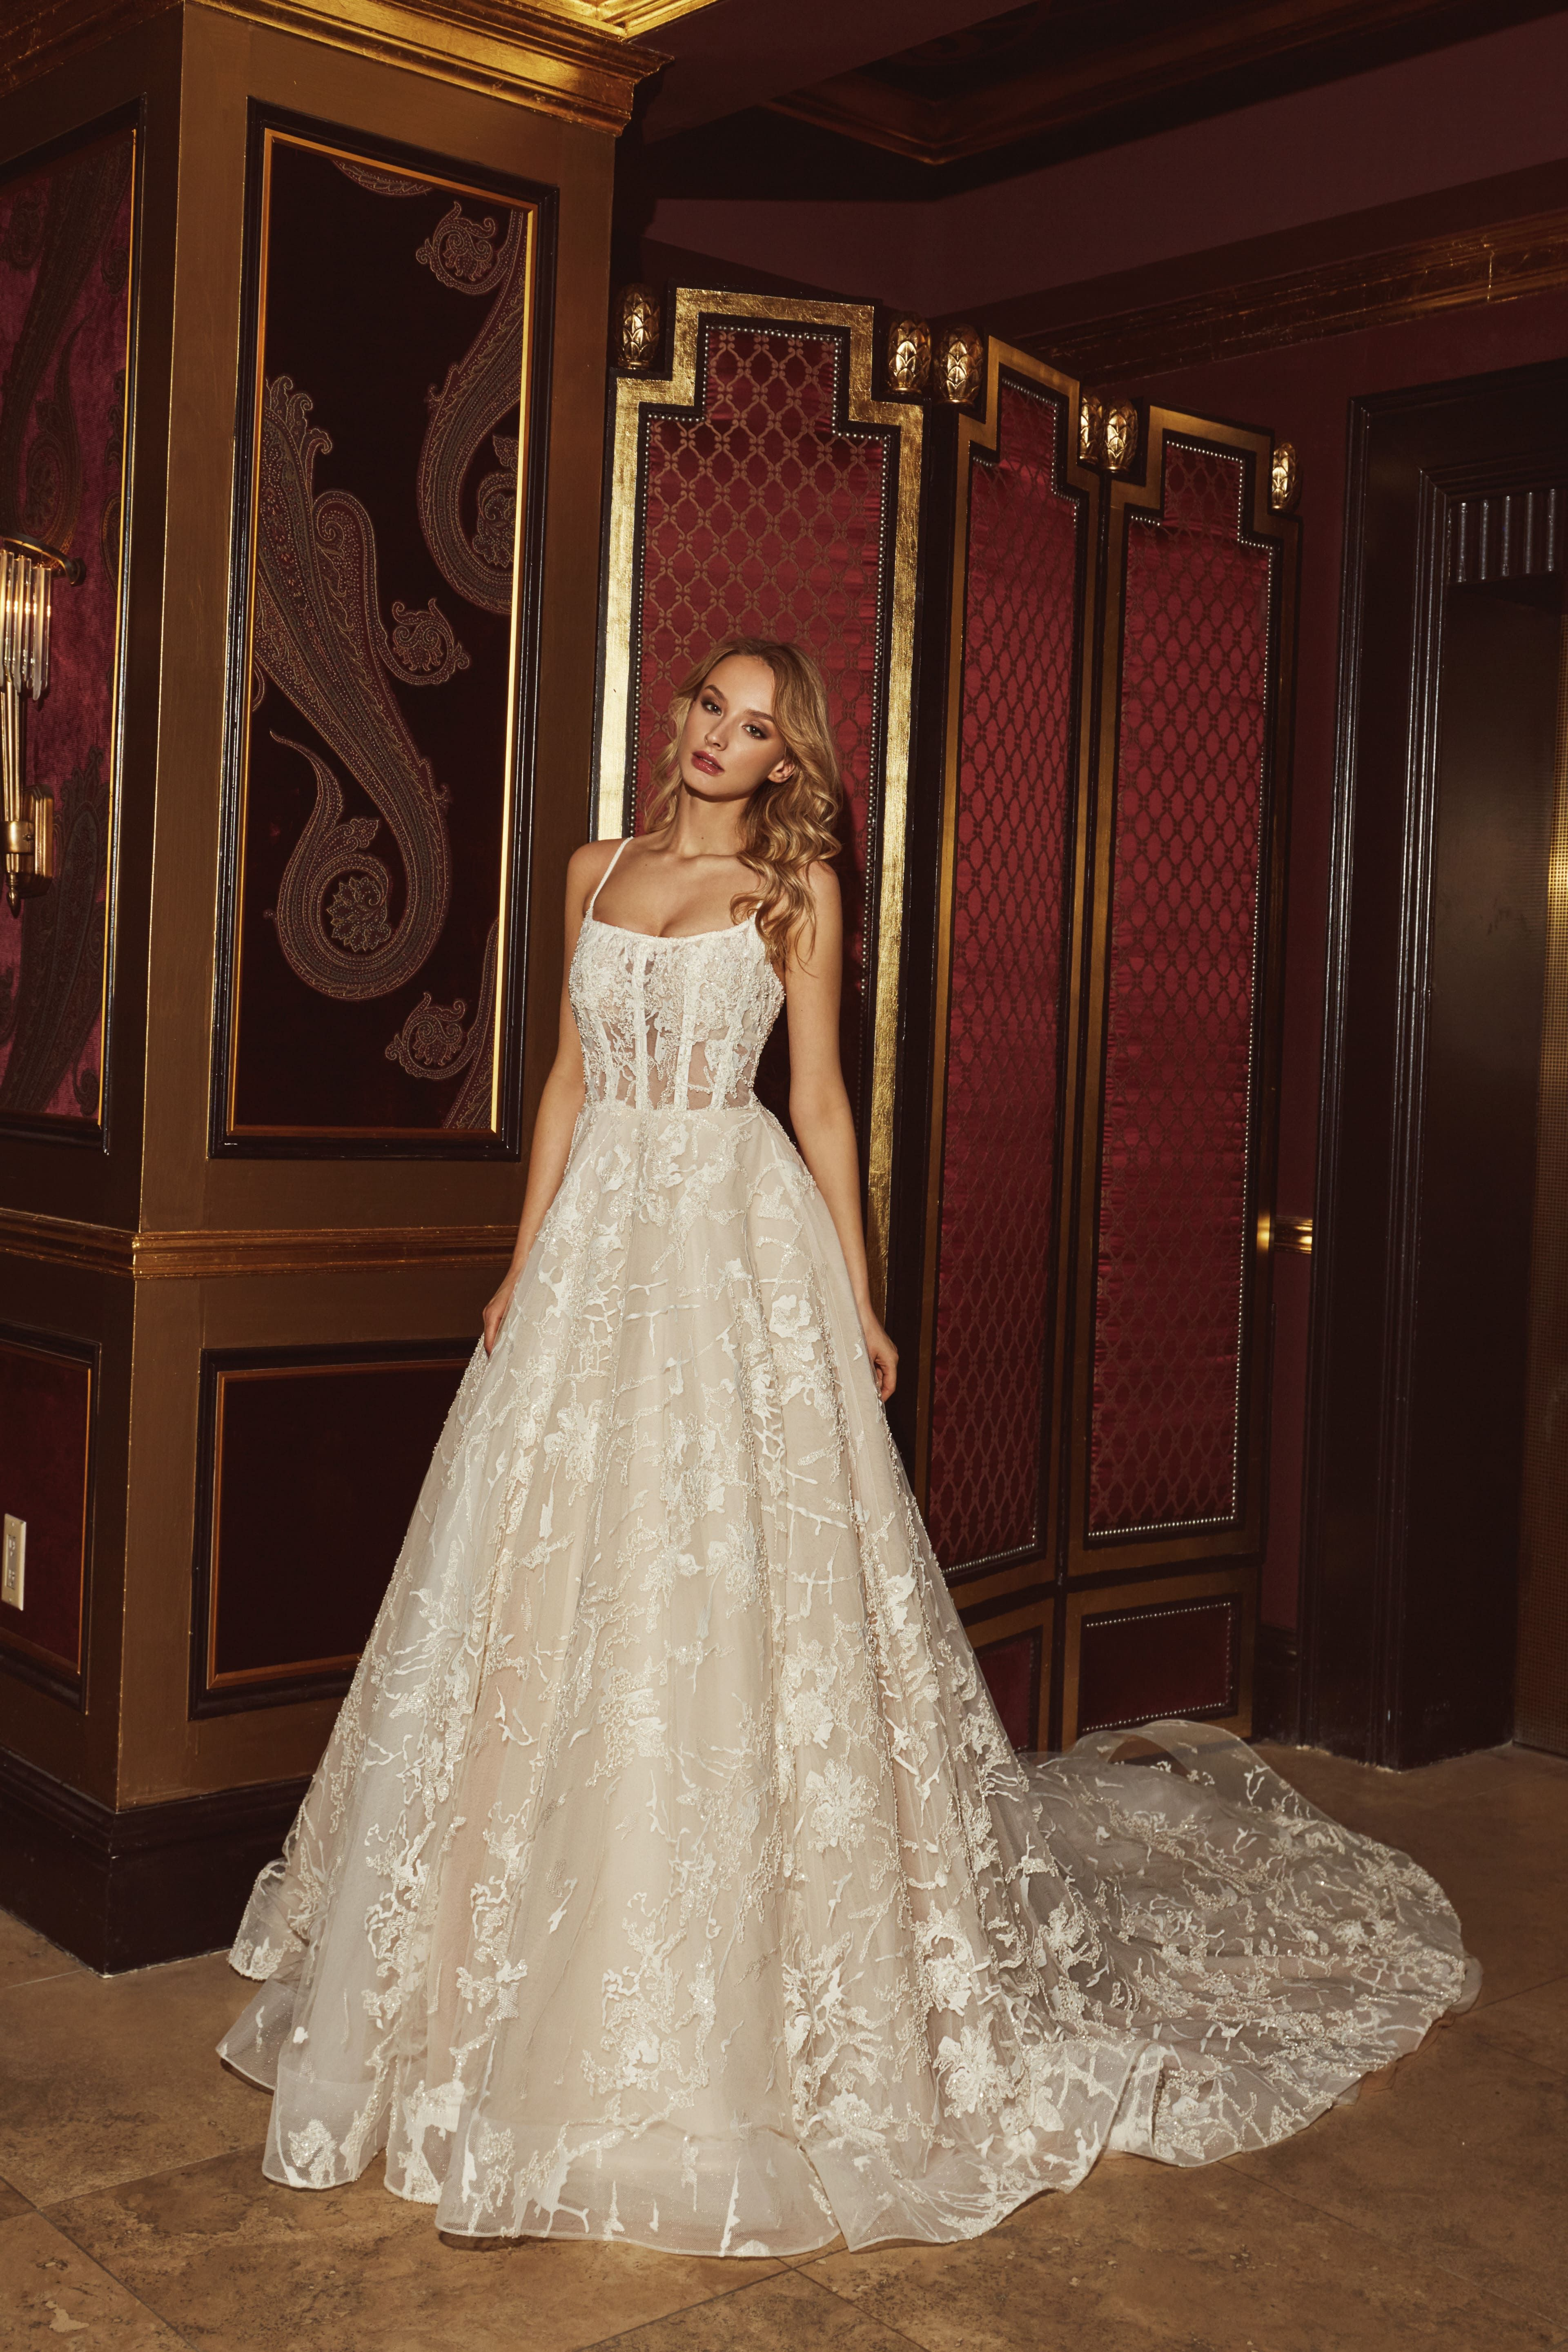 Claire By Calla Blanche Wedding Dresses Ball Gown Wedding Dress Bridal